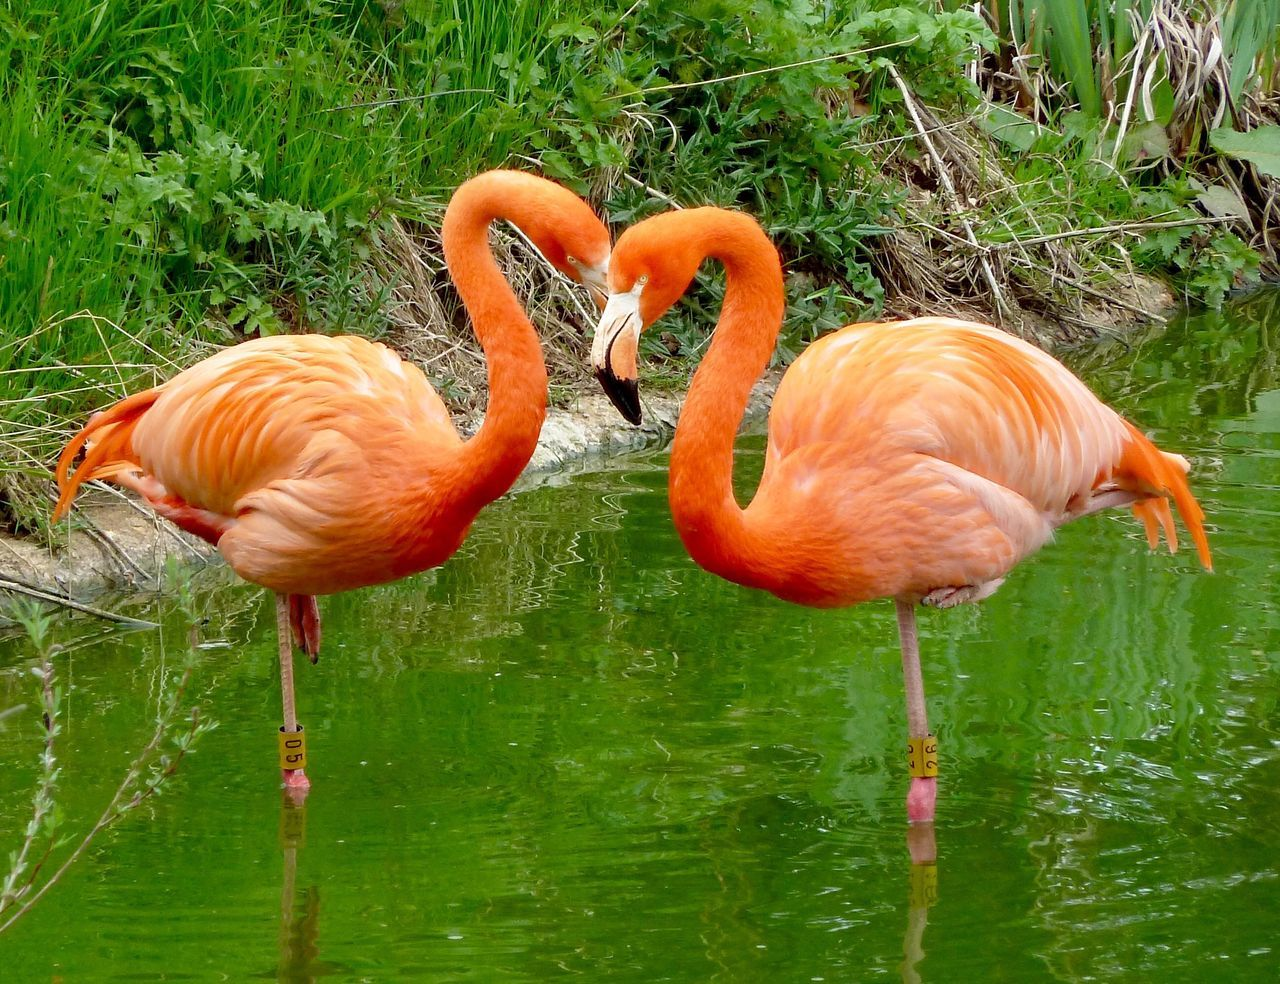 Flamingos Whipsnade Zoo Love Flamingo Bird Animals In The Wild Orange Color Animal Themes Animal Wildlife No People Two Animals Nature Water Grass Outdoors Day Lake Full Length Beauty In Nature